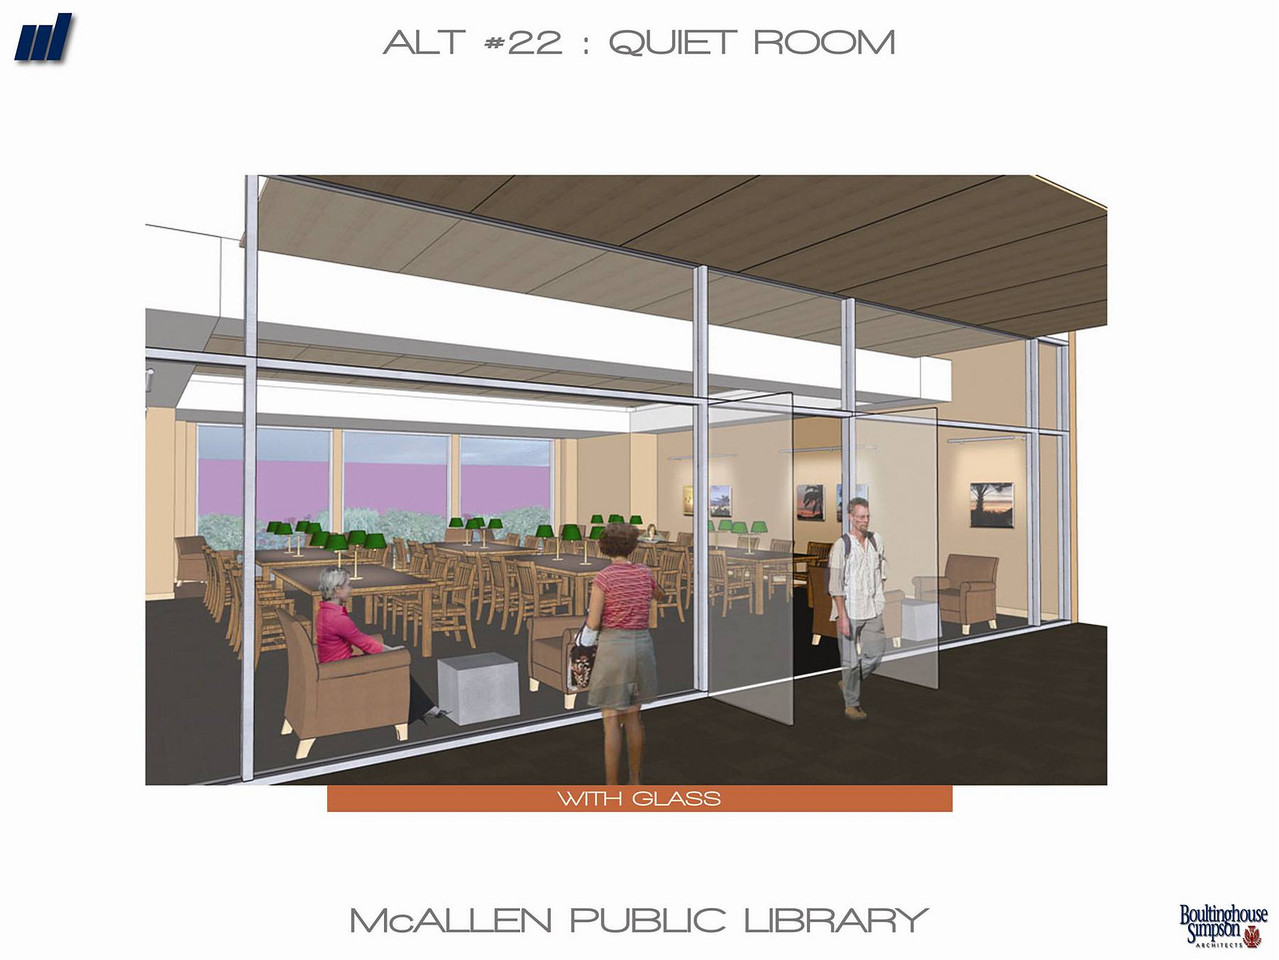 An interior view of the new Main Library, showing the quiet room that patrons will be able to use for study, reading and relaxation.